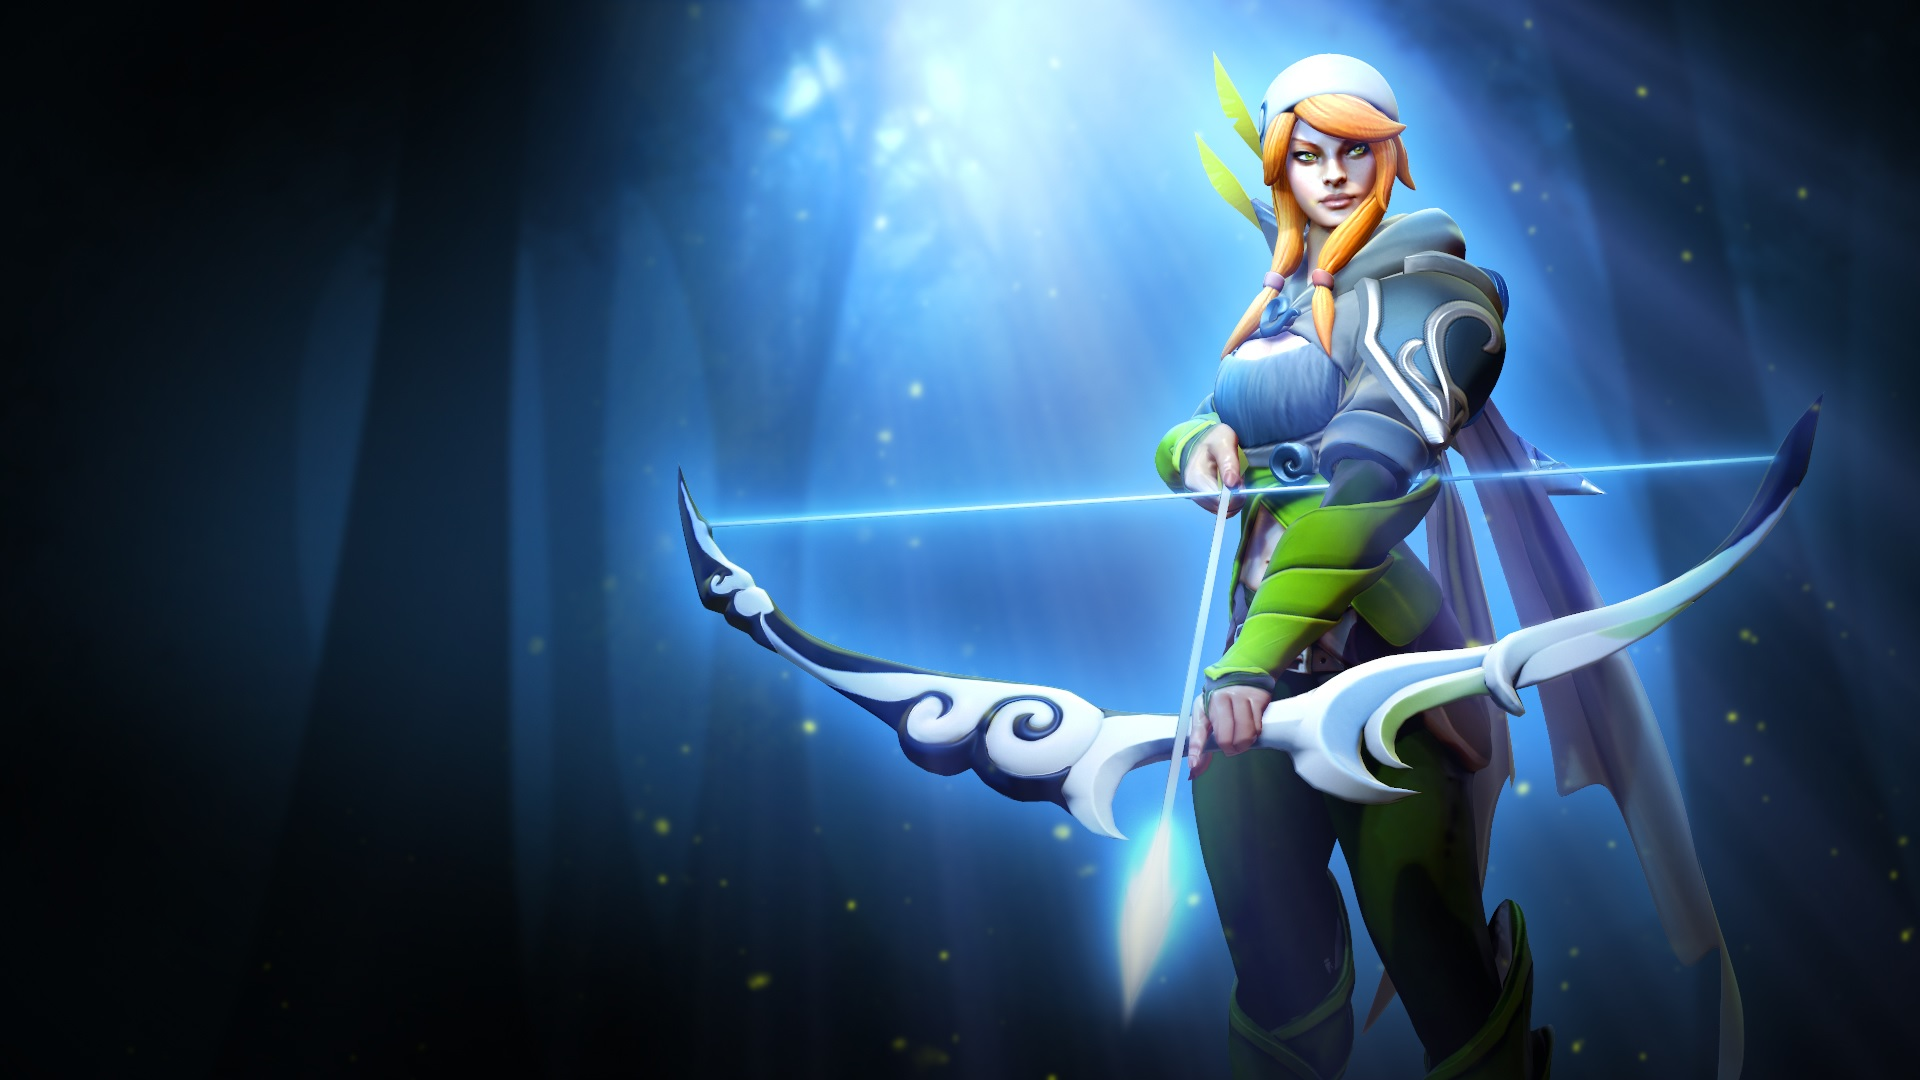 Windrunner desktop pc wallpaper